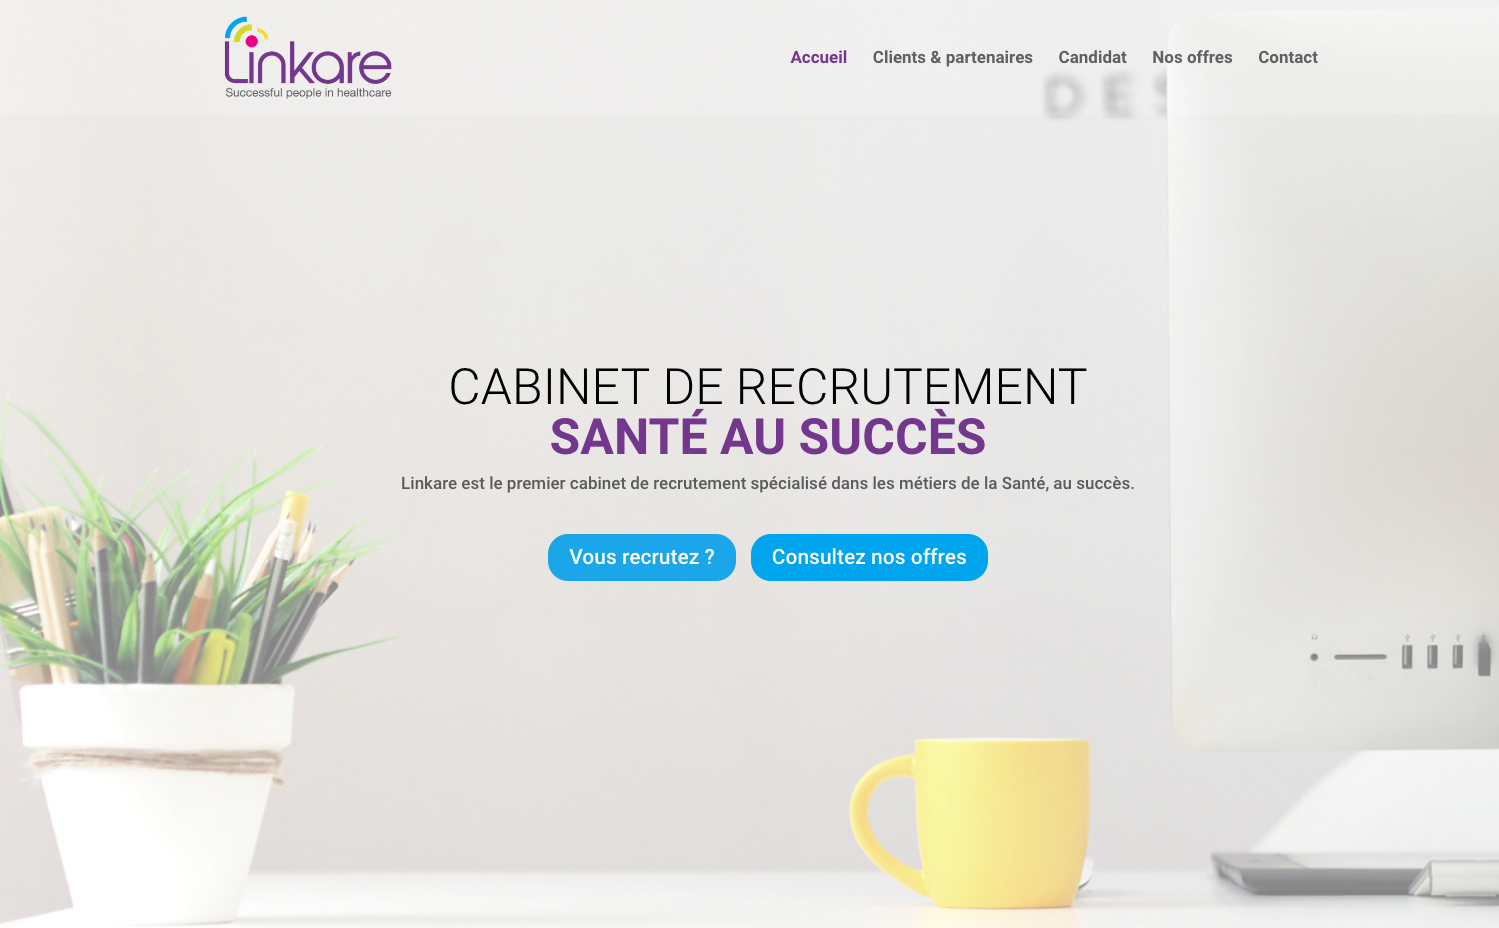 Linkare consulting cabinet de recrutement sant au succ s - Cabinet de recrutement languedoc roussillon ...